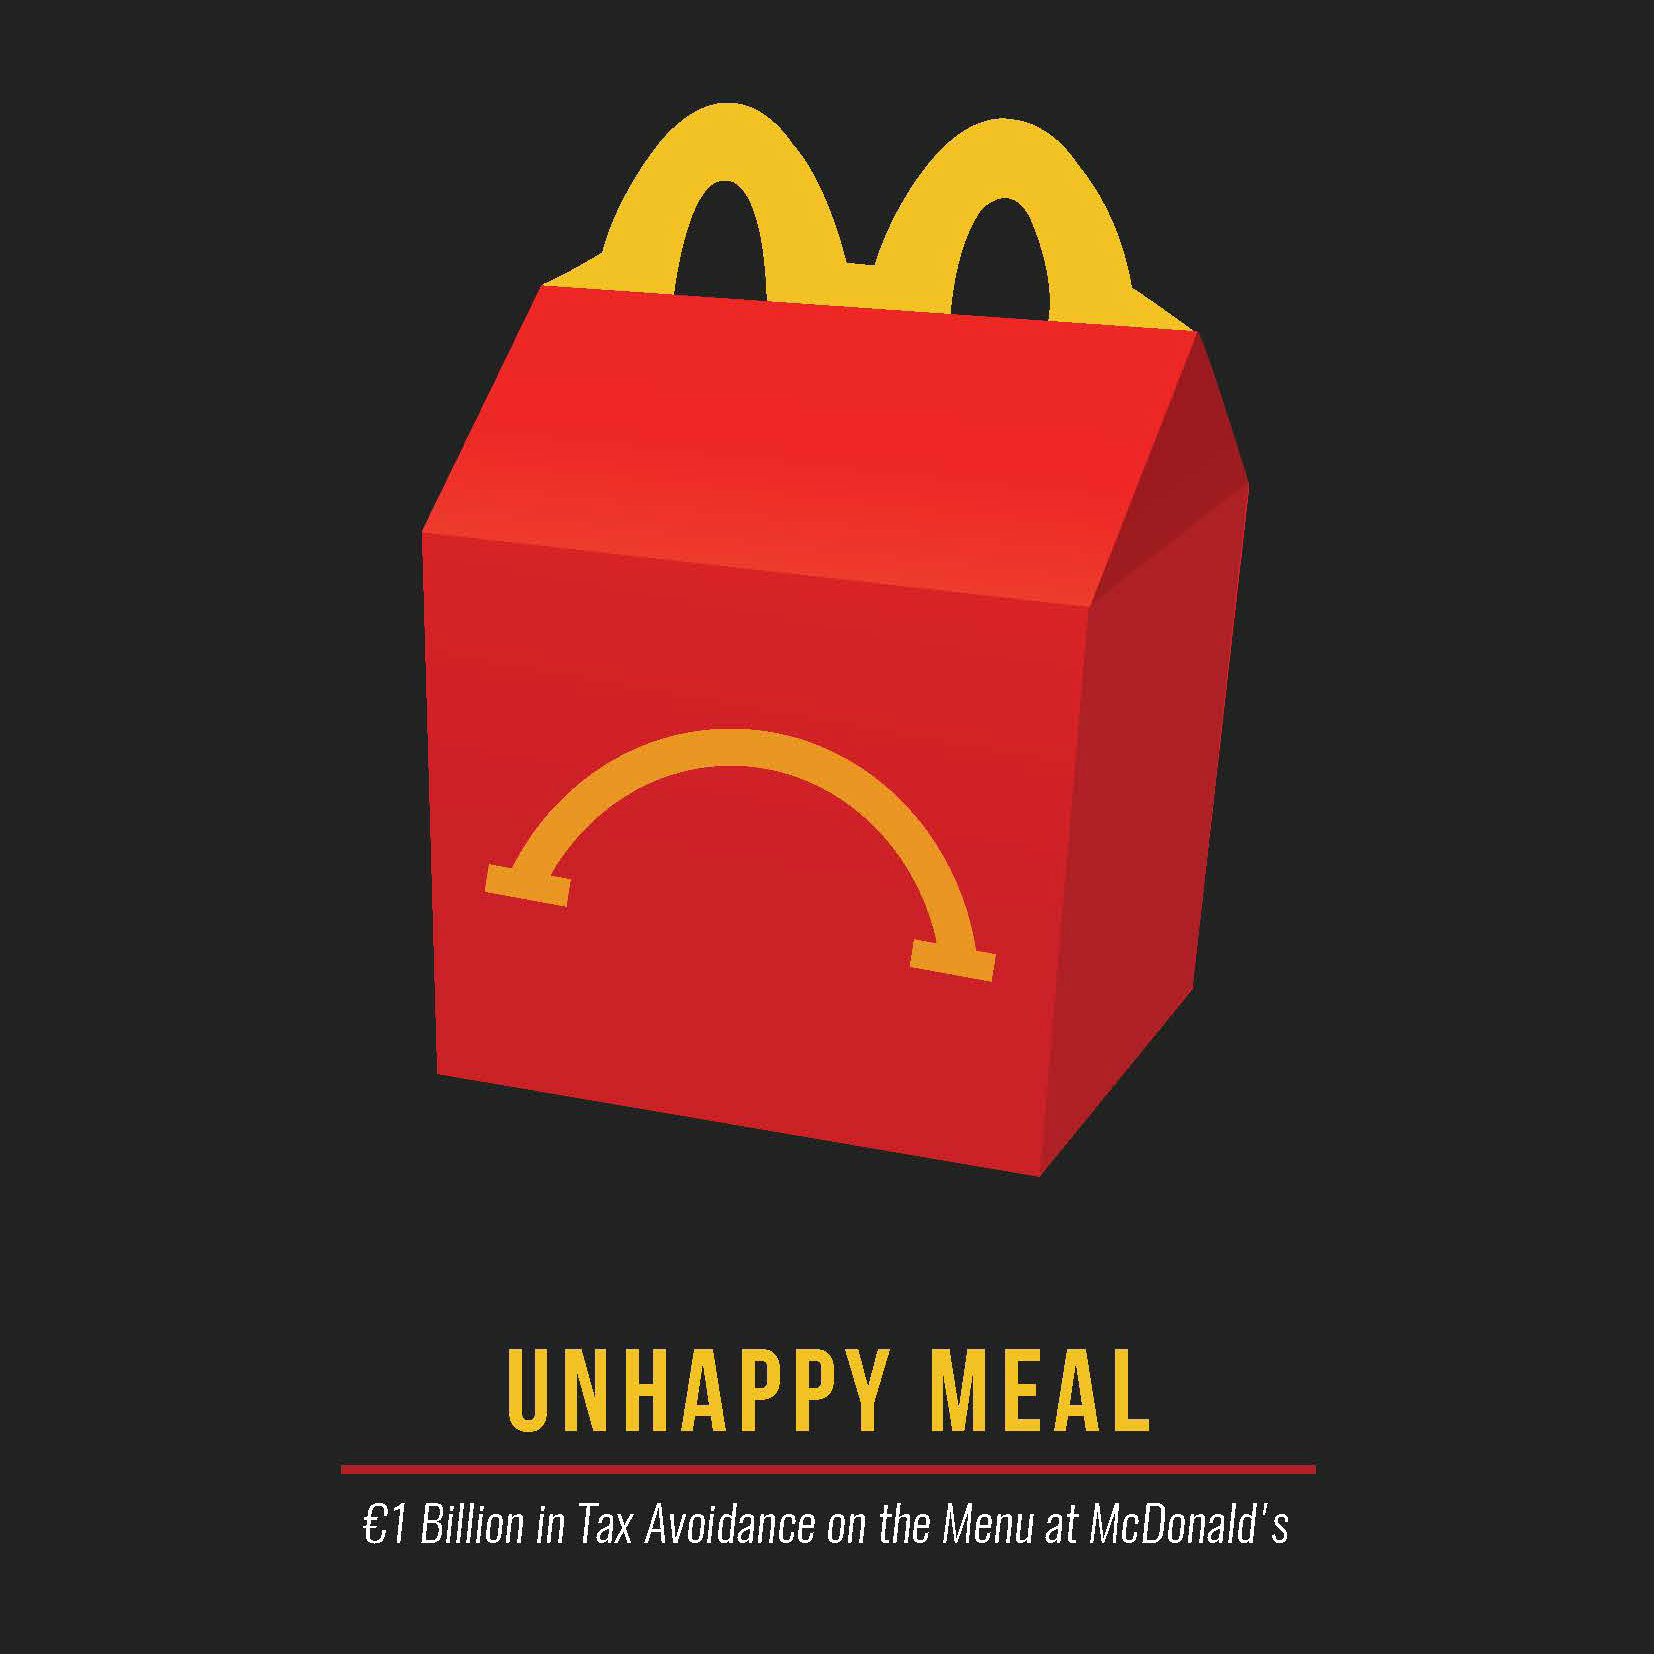 Unhappy_Meal_sq